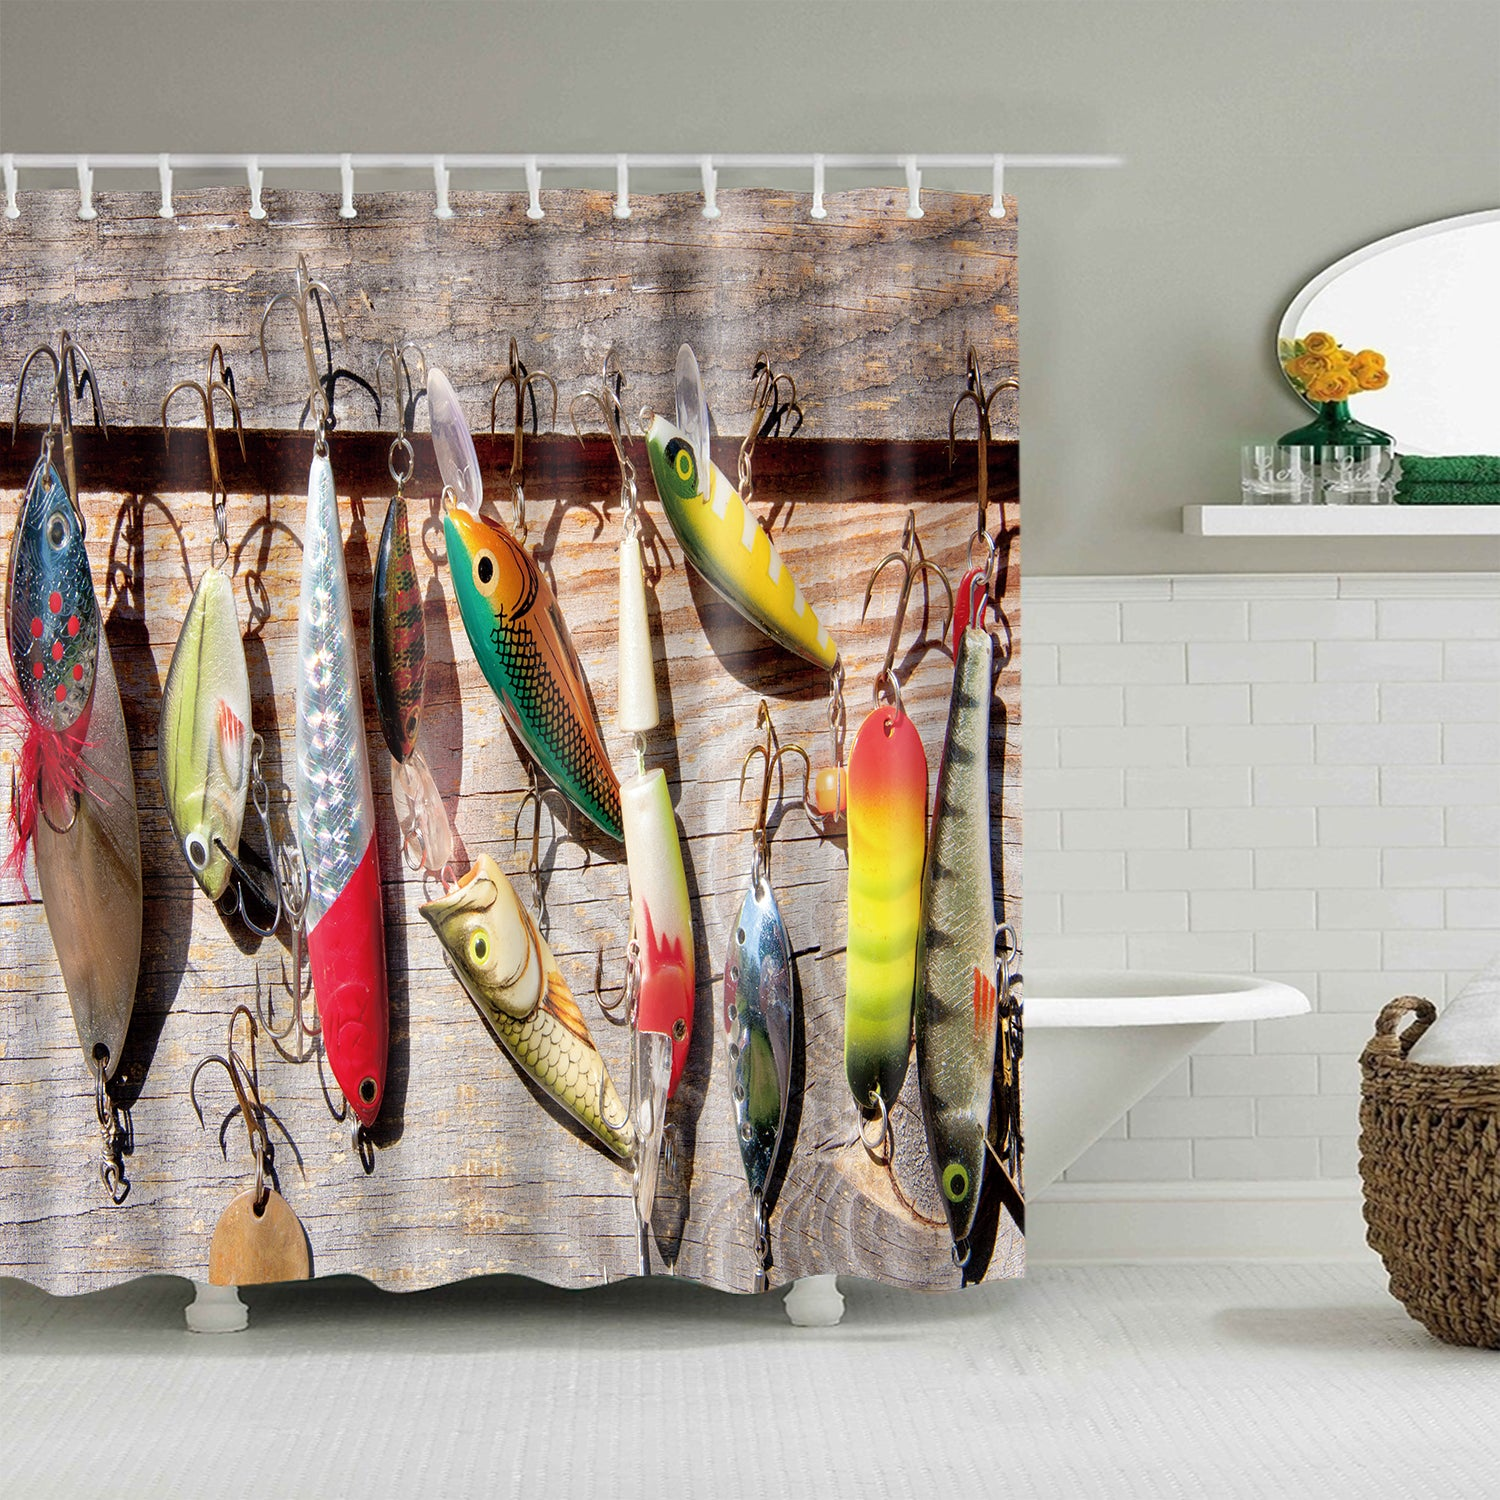 Freshwater Bait and Lures Fishing Gear Shower Curtain